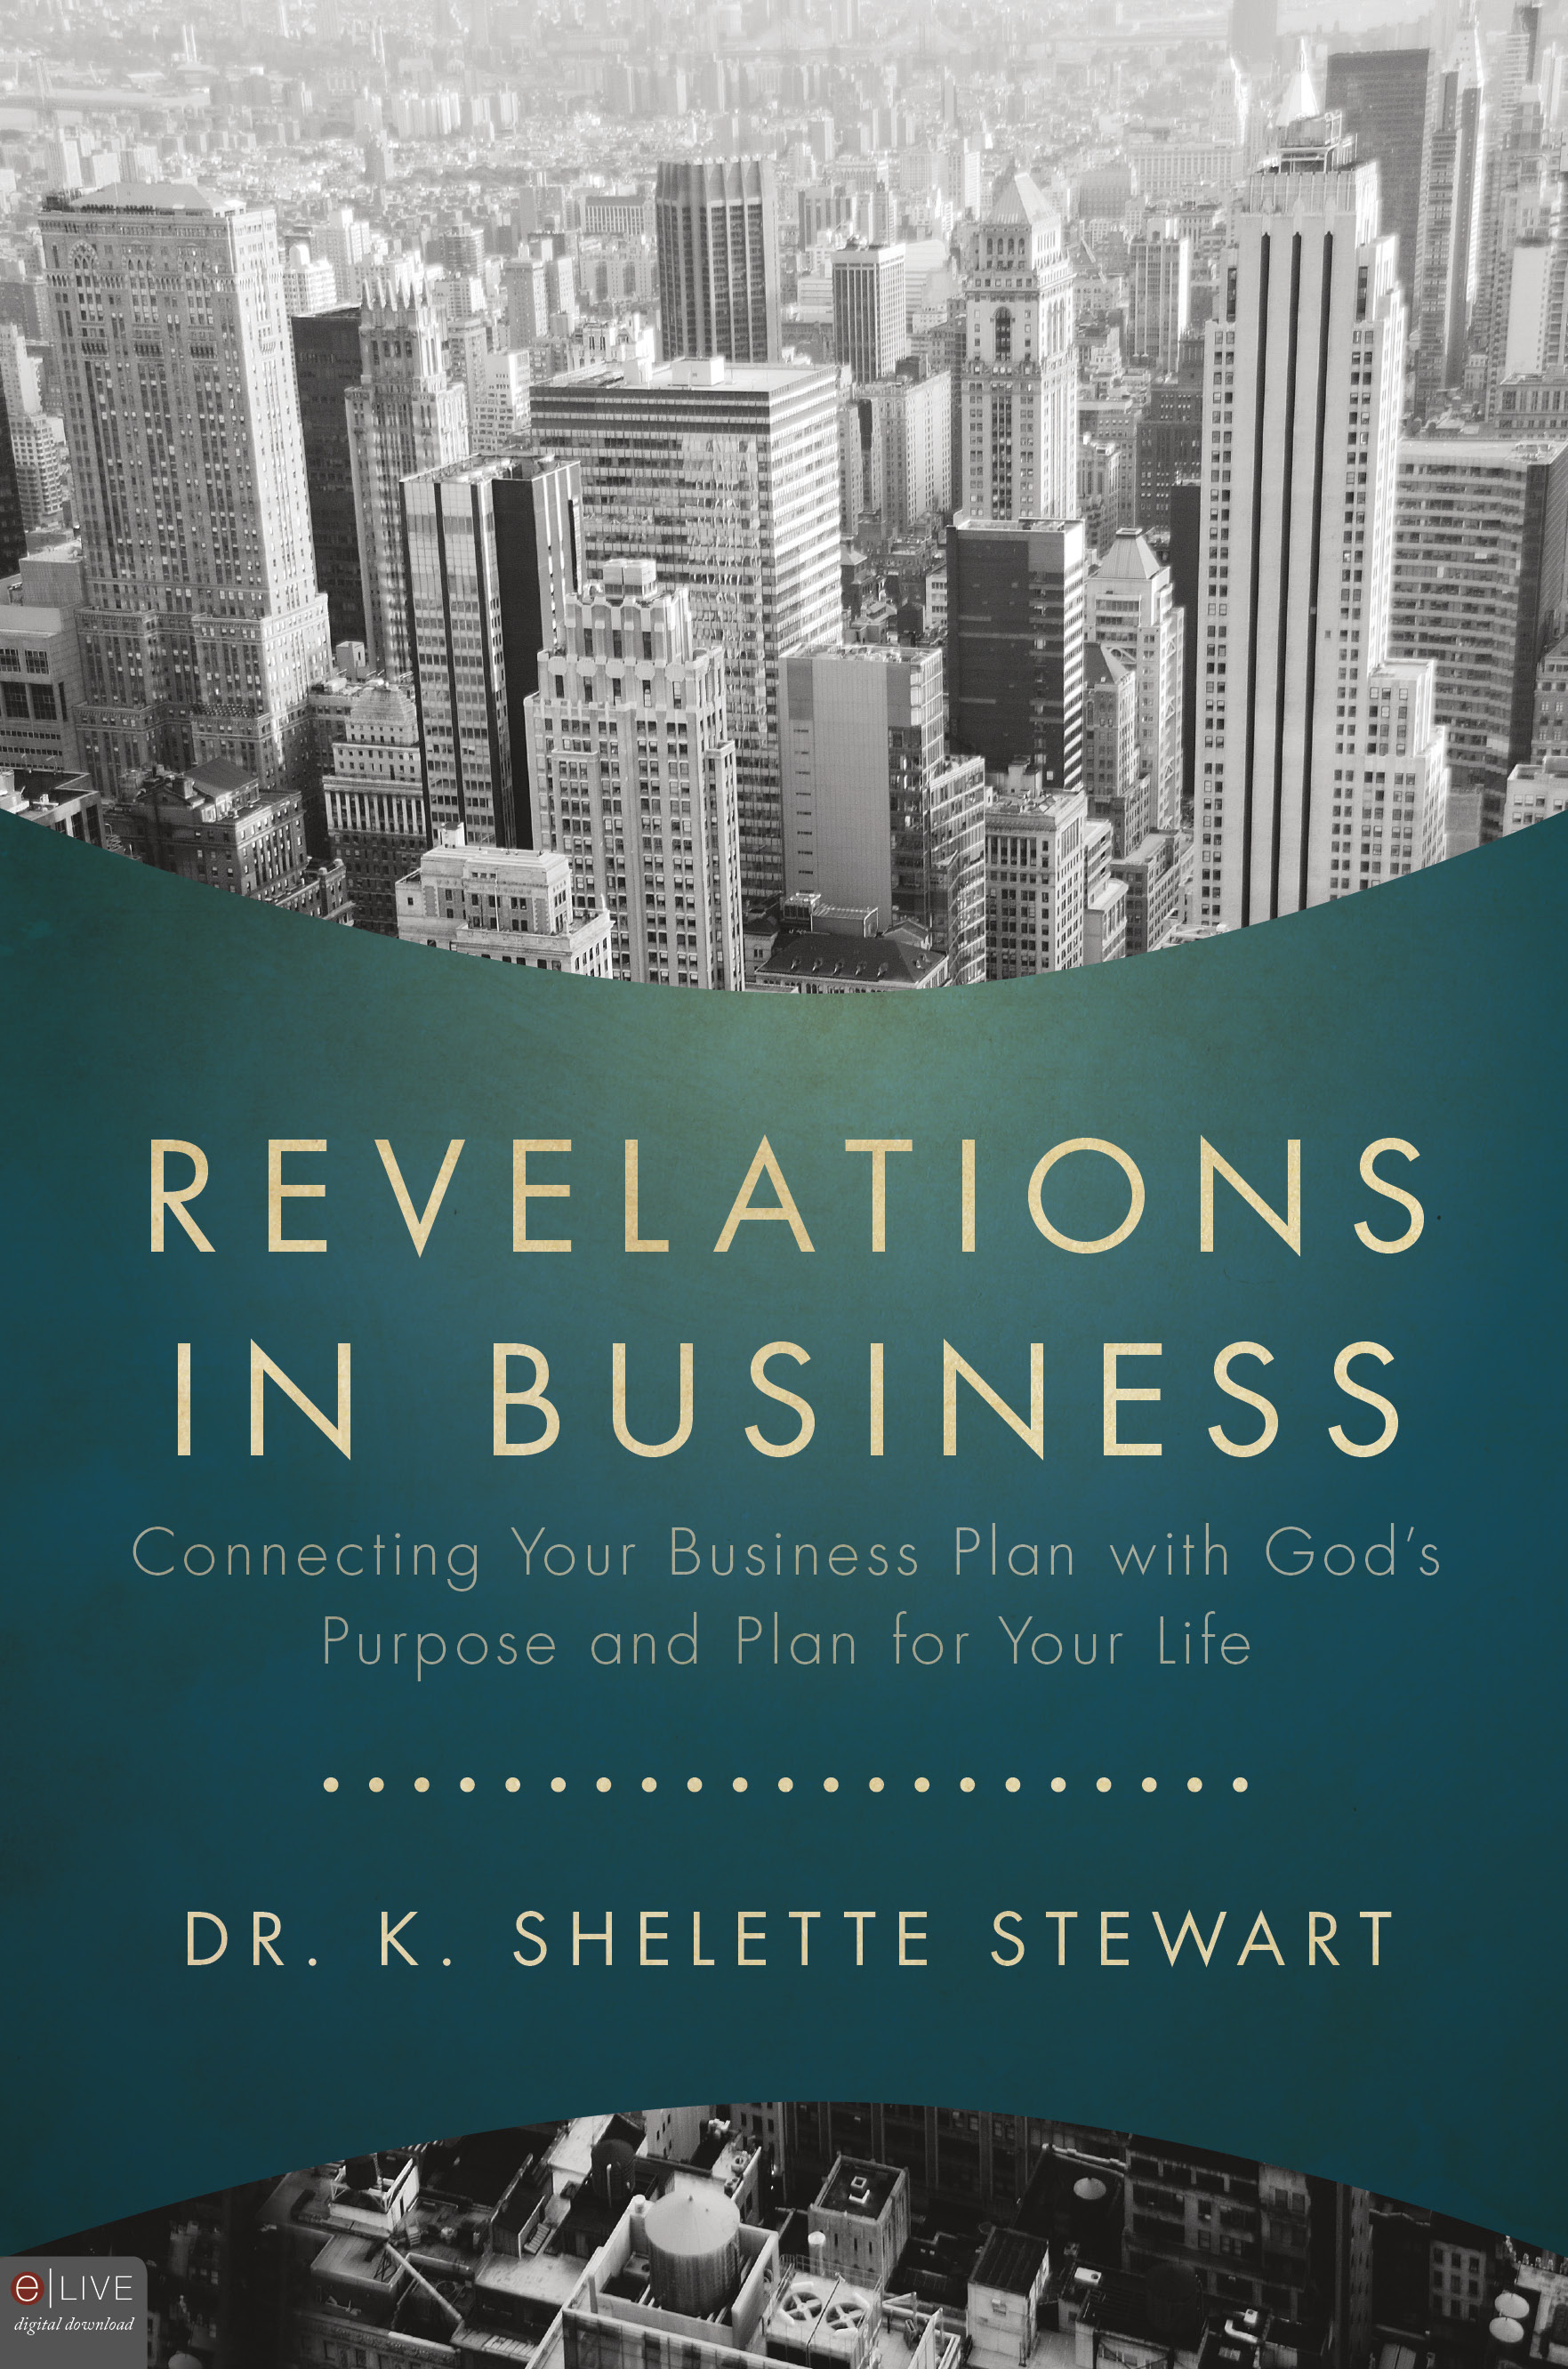 Revelations in Business book cover